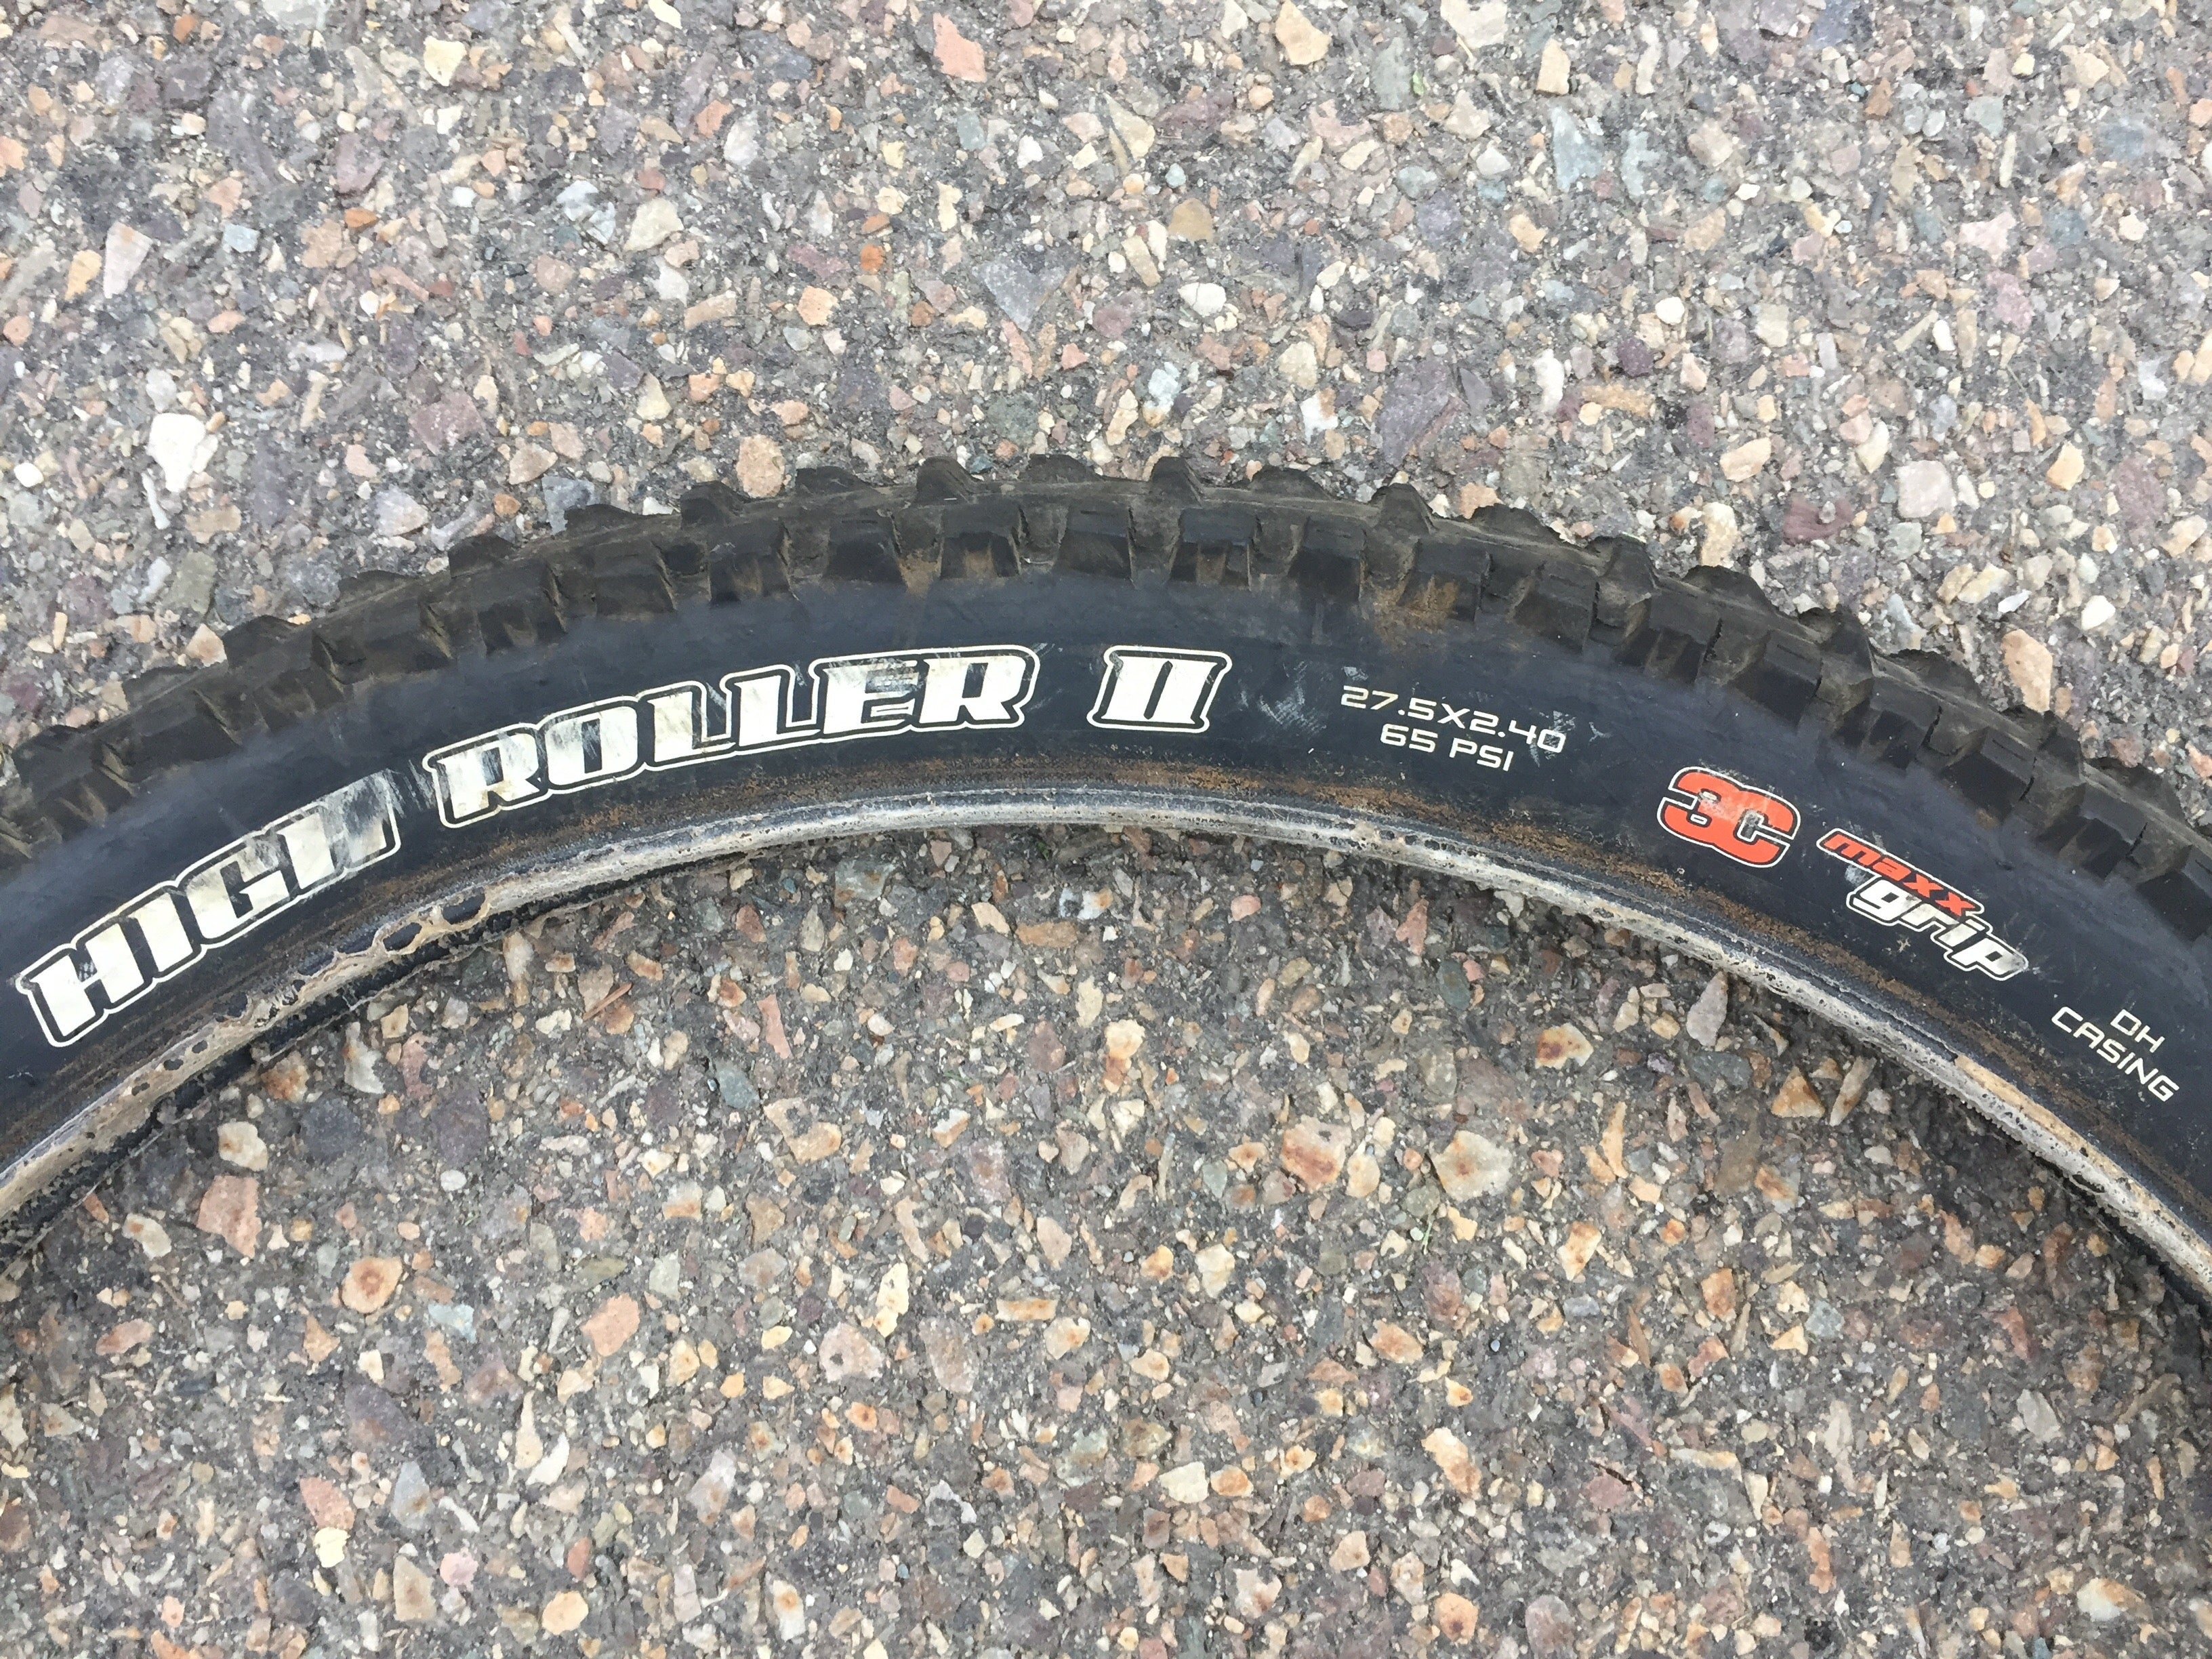 Maxxis High Roller II Tire Review - Worldwide Cyclery